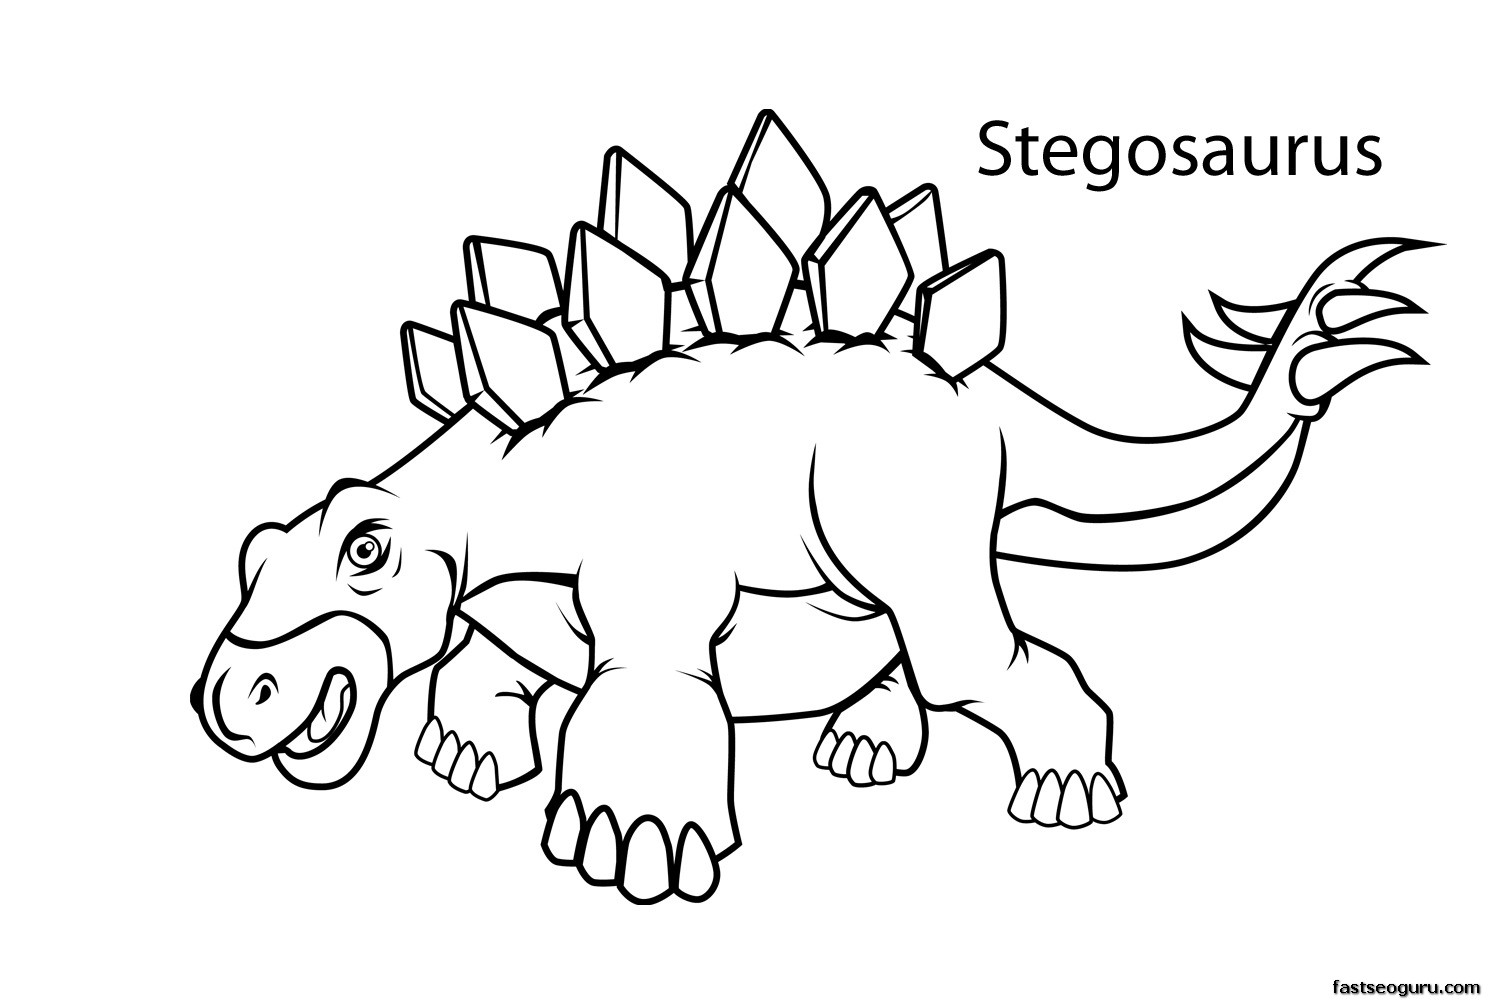 Childrens coloring dinosaur pages - Printable Dinosaur Colouring Sheets Free Printable Dinosaur Coloring Pages For Kids Pictures To Pin On